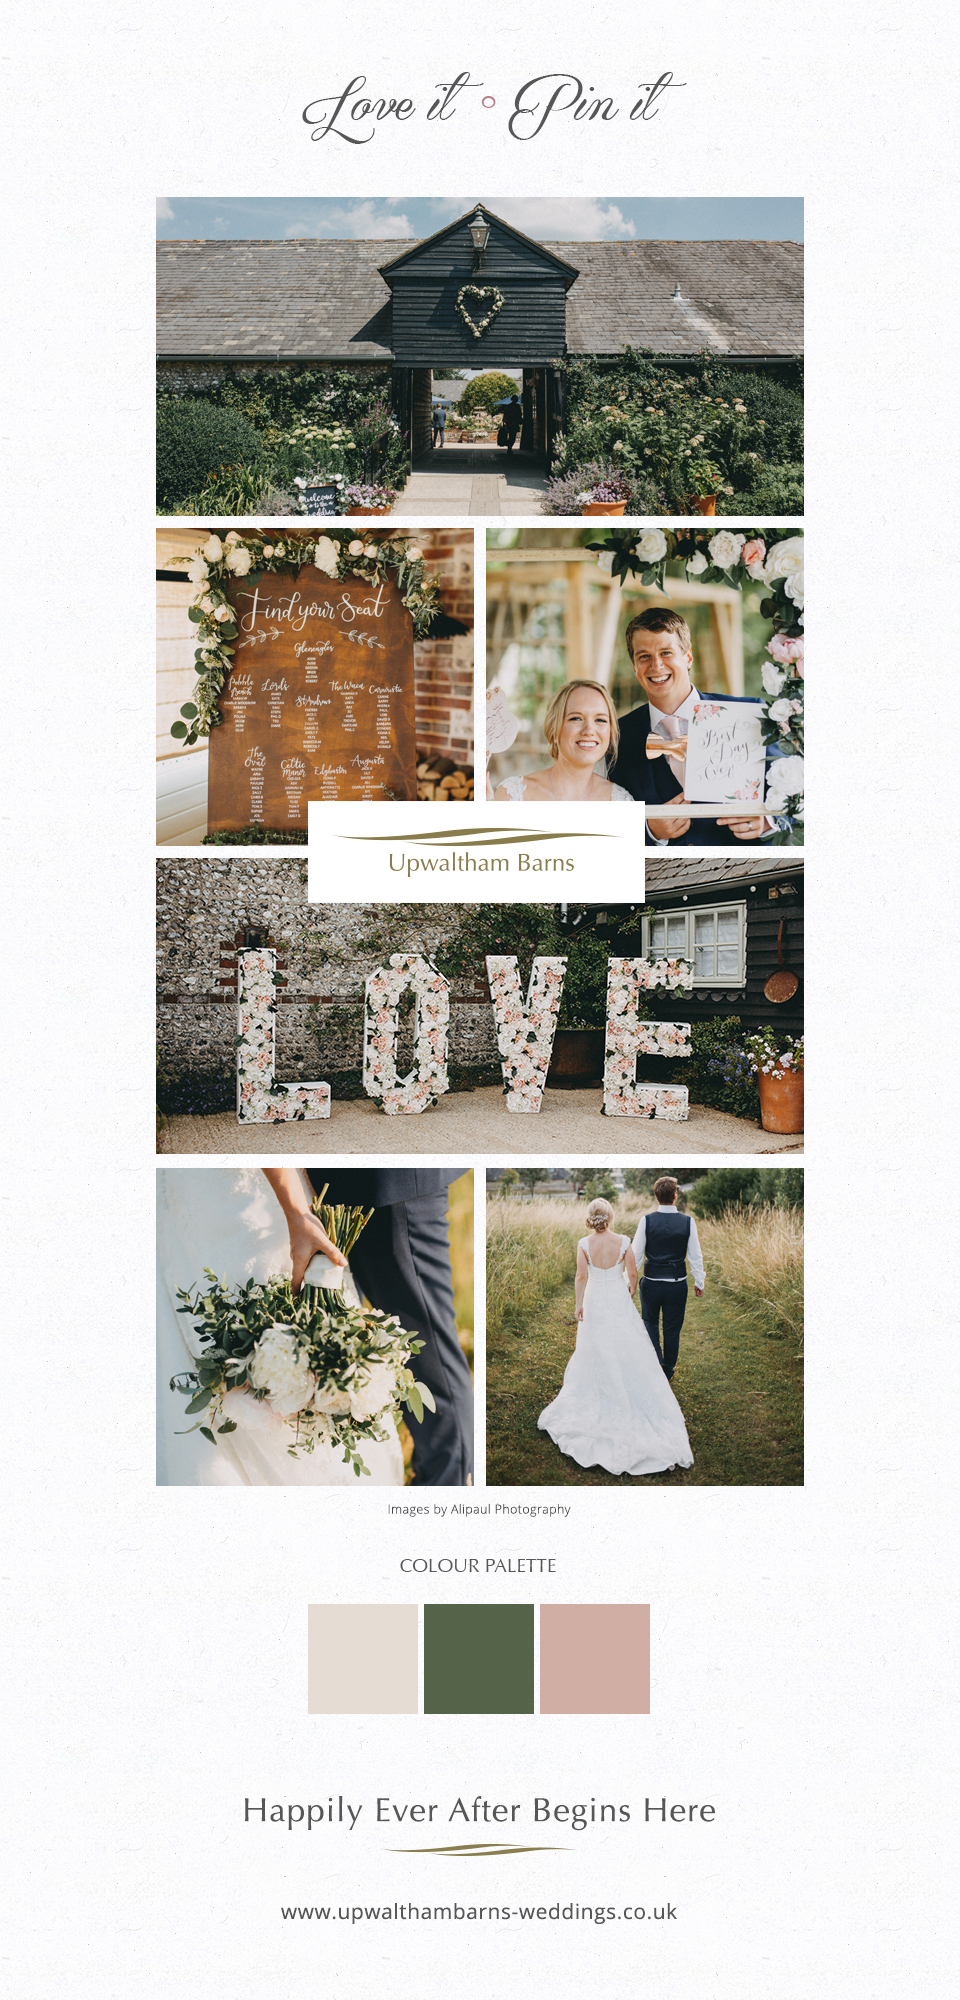 Nikki and Chris' real life wedding at Upwaltham Barns